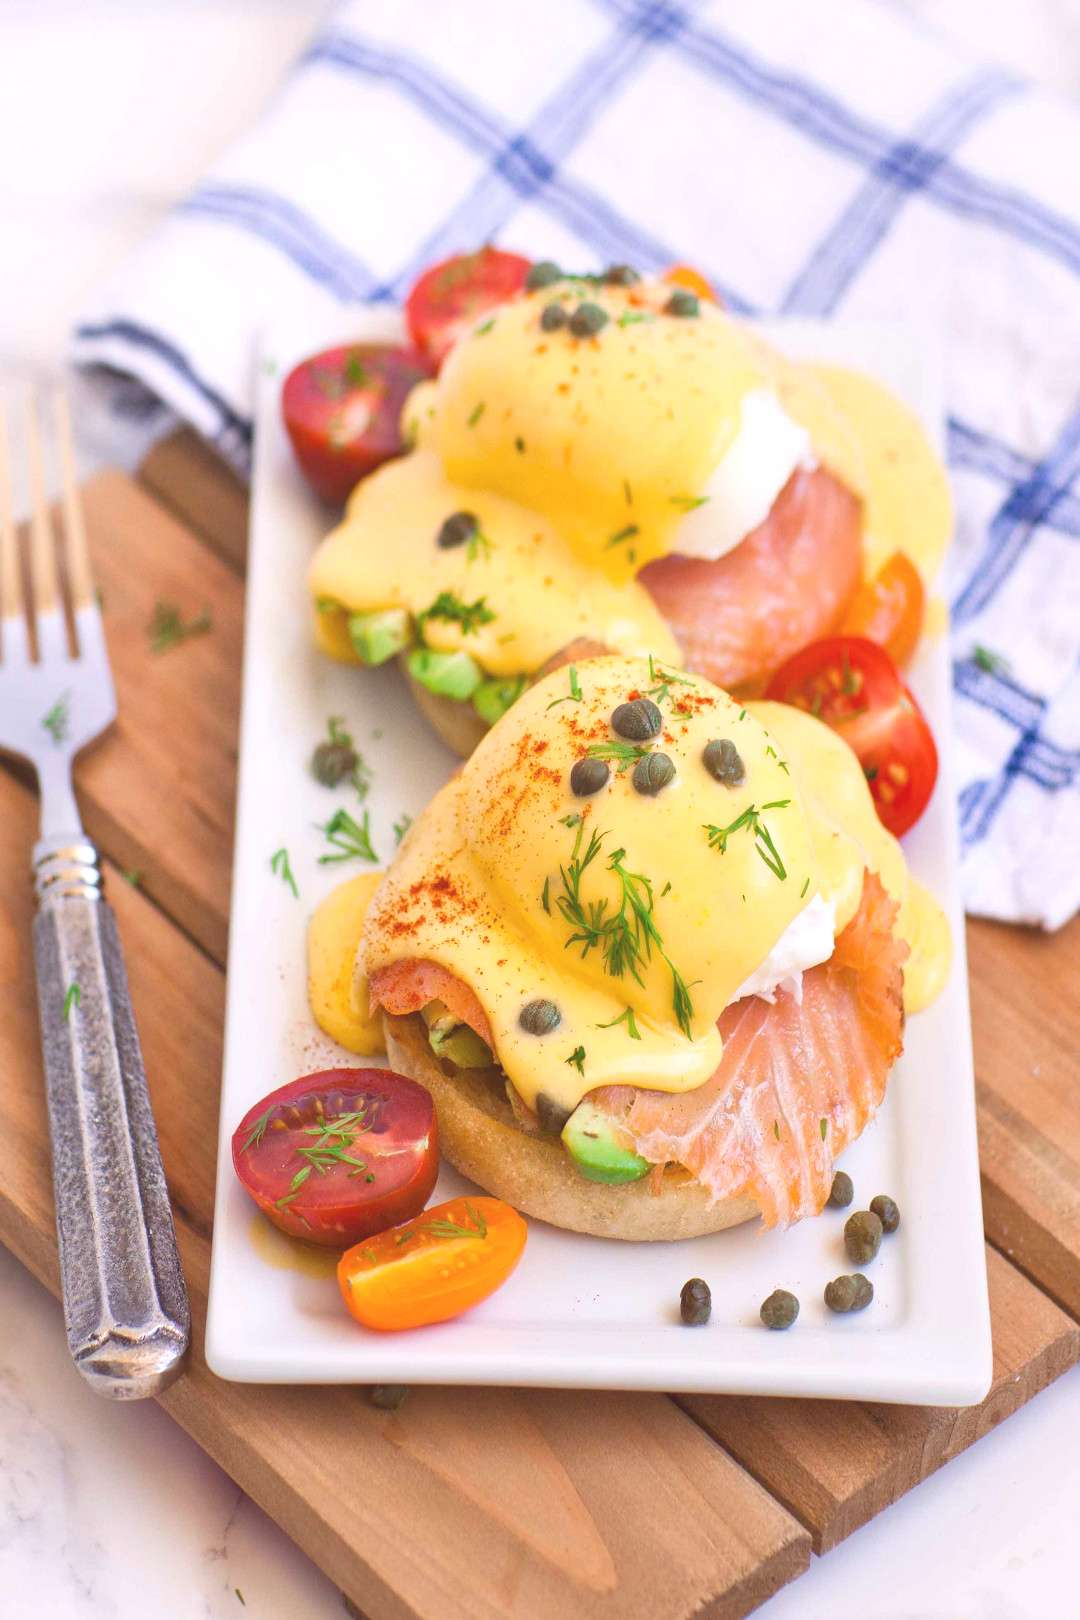 One of my all-time favorite breakfast recipes smoked salmon and avocado eggs benedict! My husband